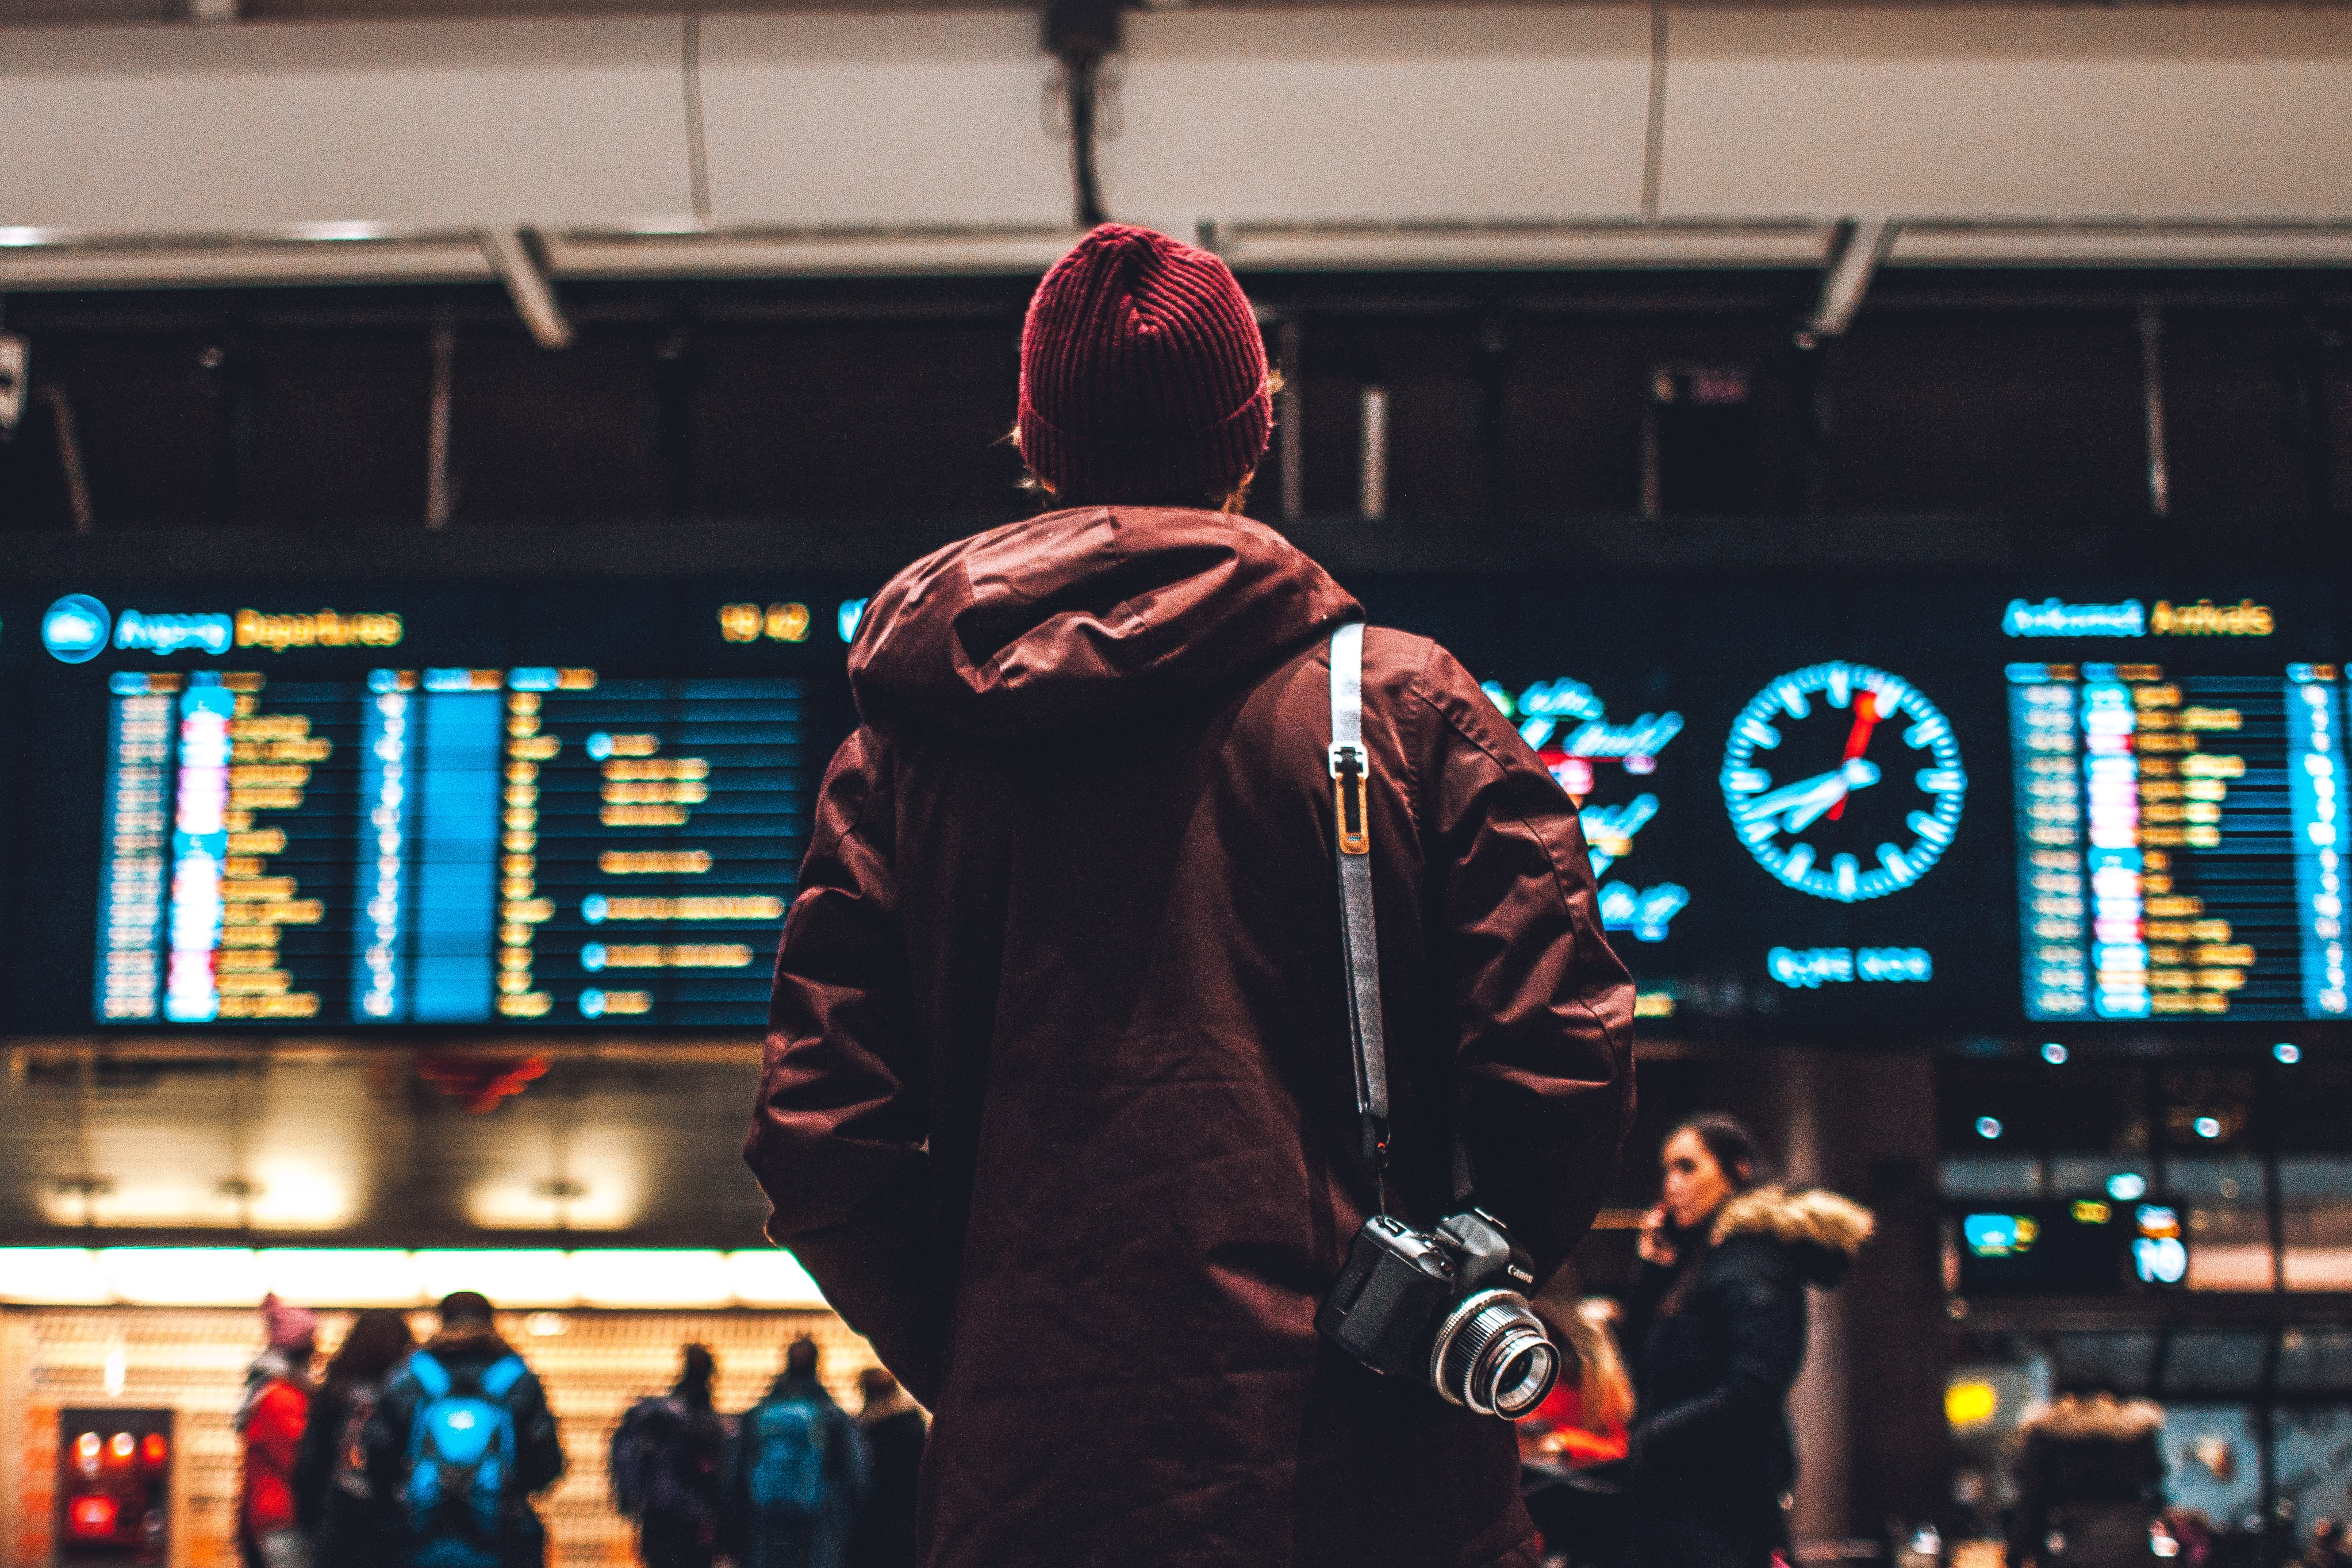 man looking up at a departure board at an airport